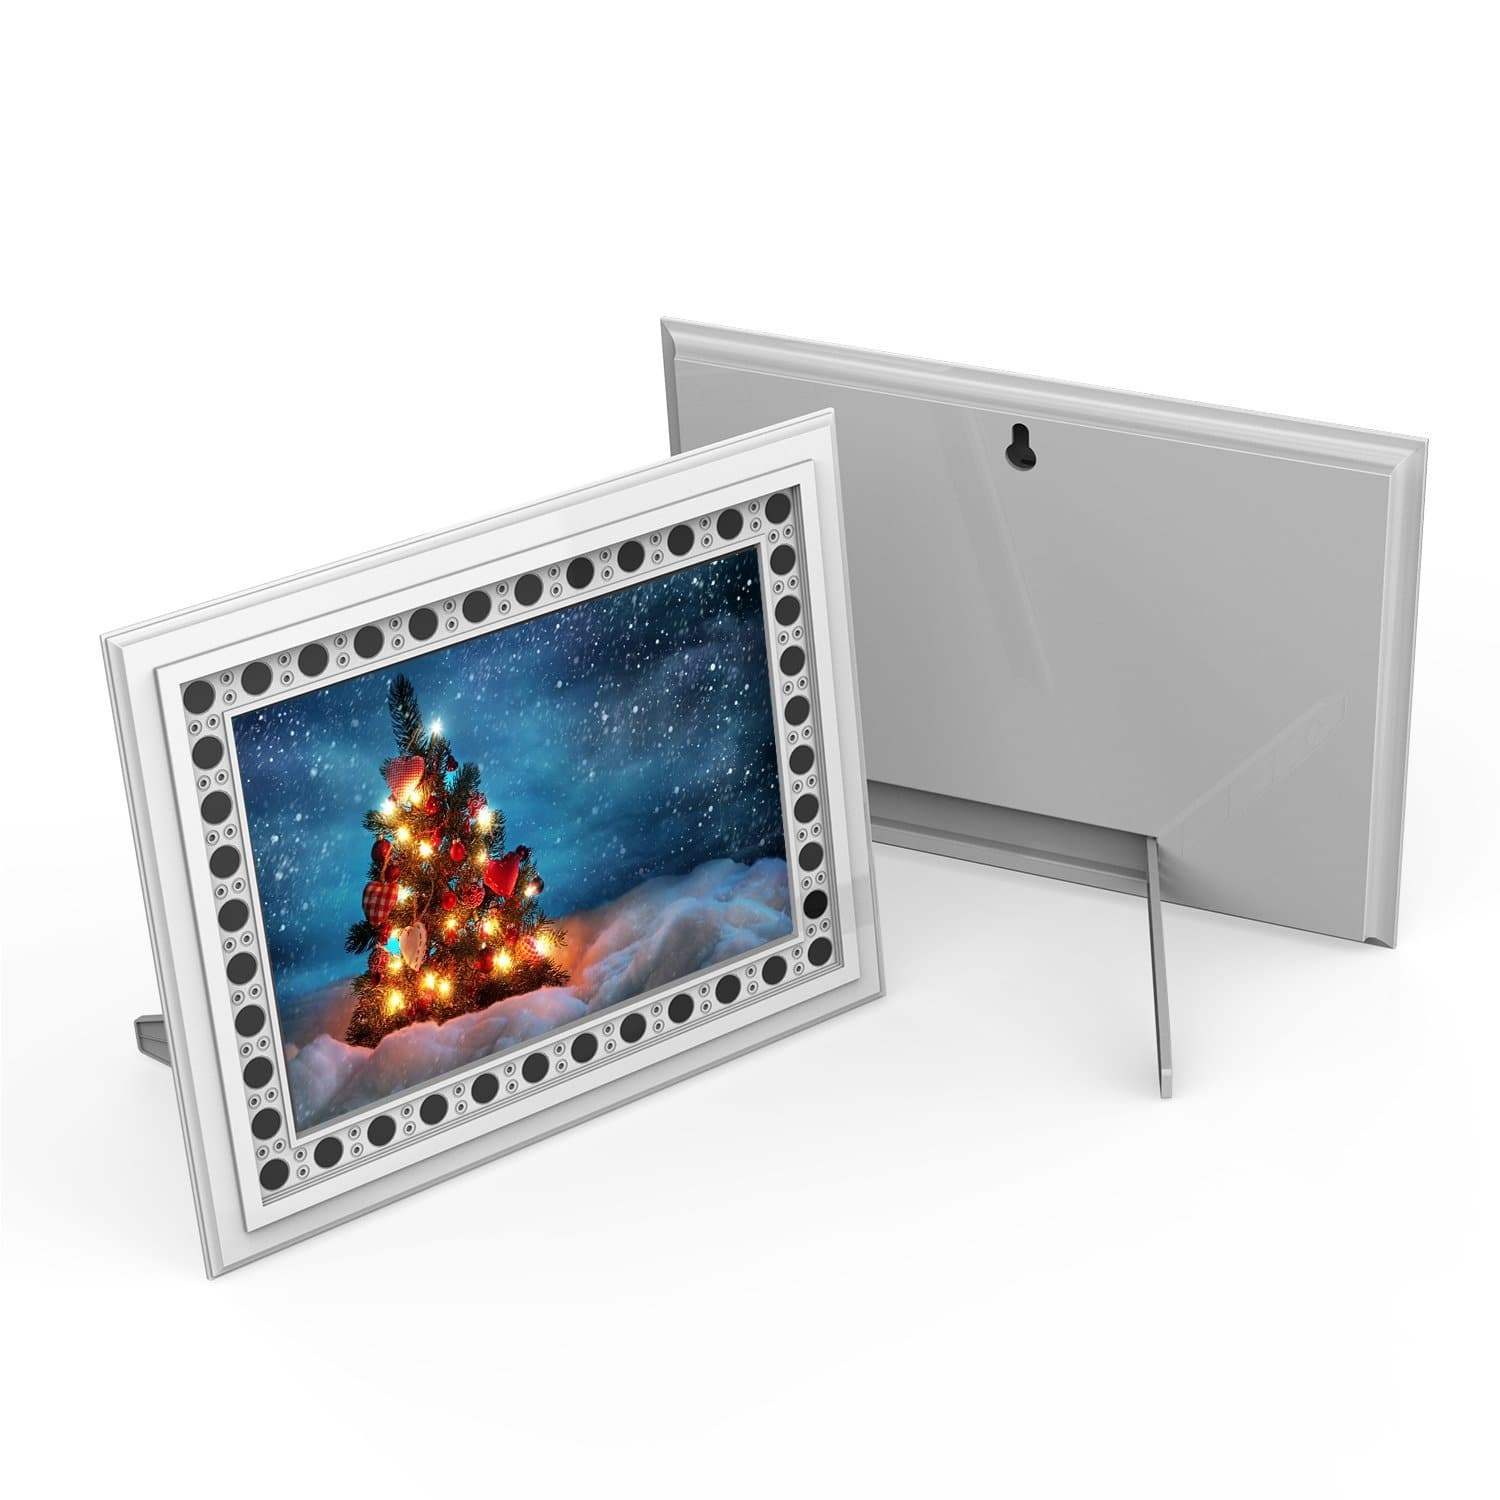 HD Digital photo frame Hidden Spy Camera Night Vision Motion Activated 10,000 mAH battery $49.99